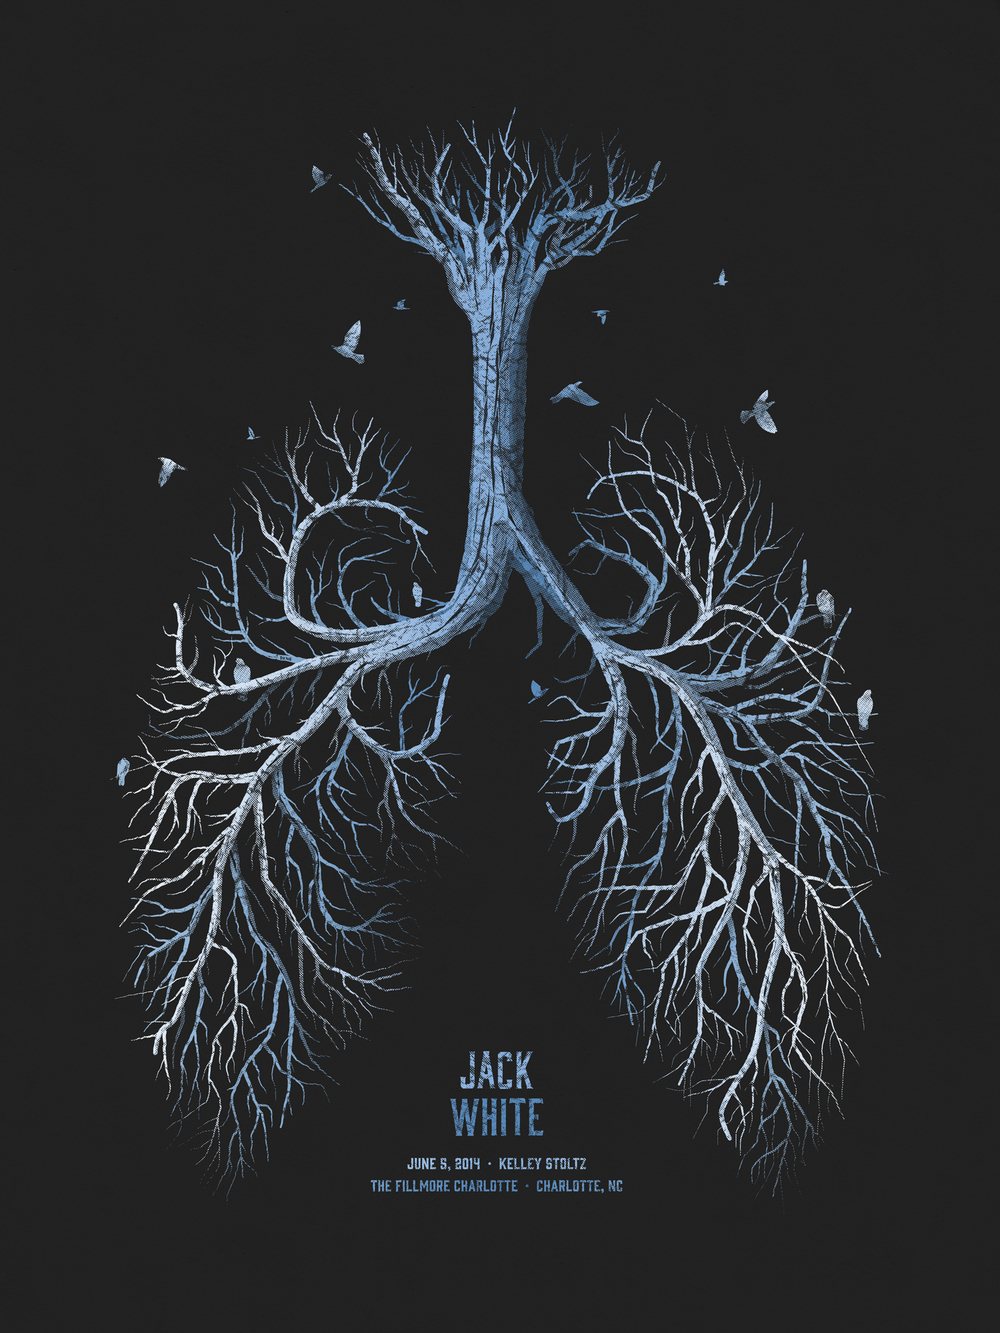 Jack White Gig Poster by DKNG